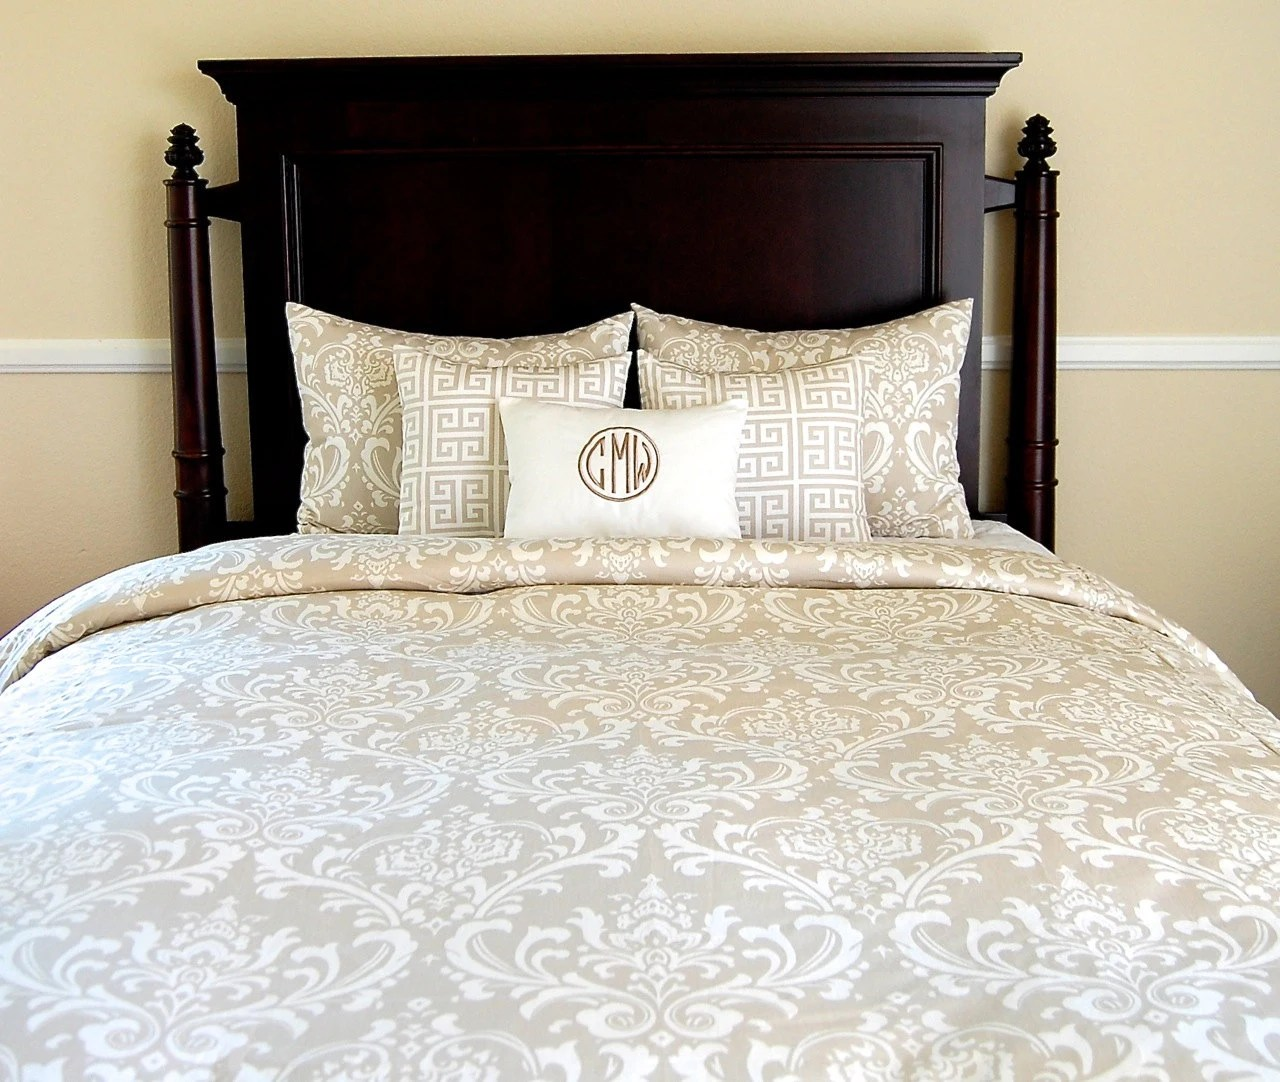 Queen Duvet Cover Last One Tan Damask Tan Bedding Queen